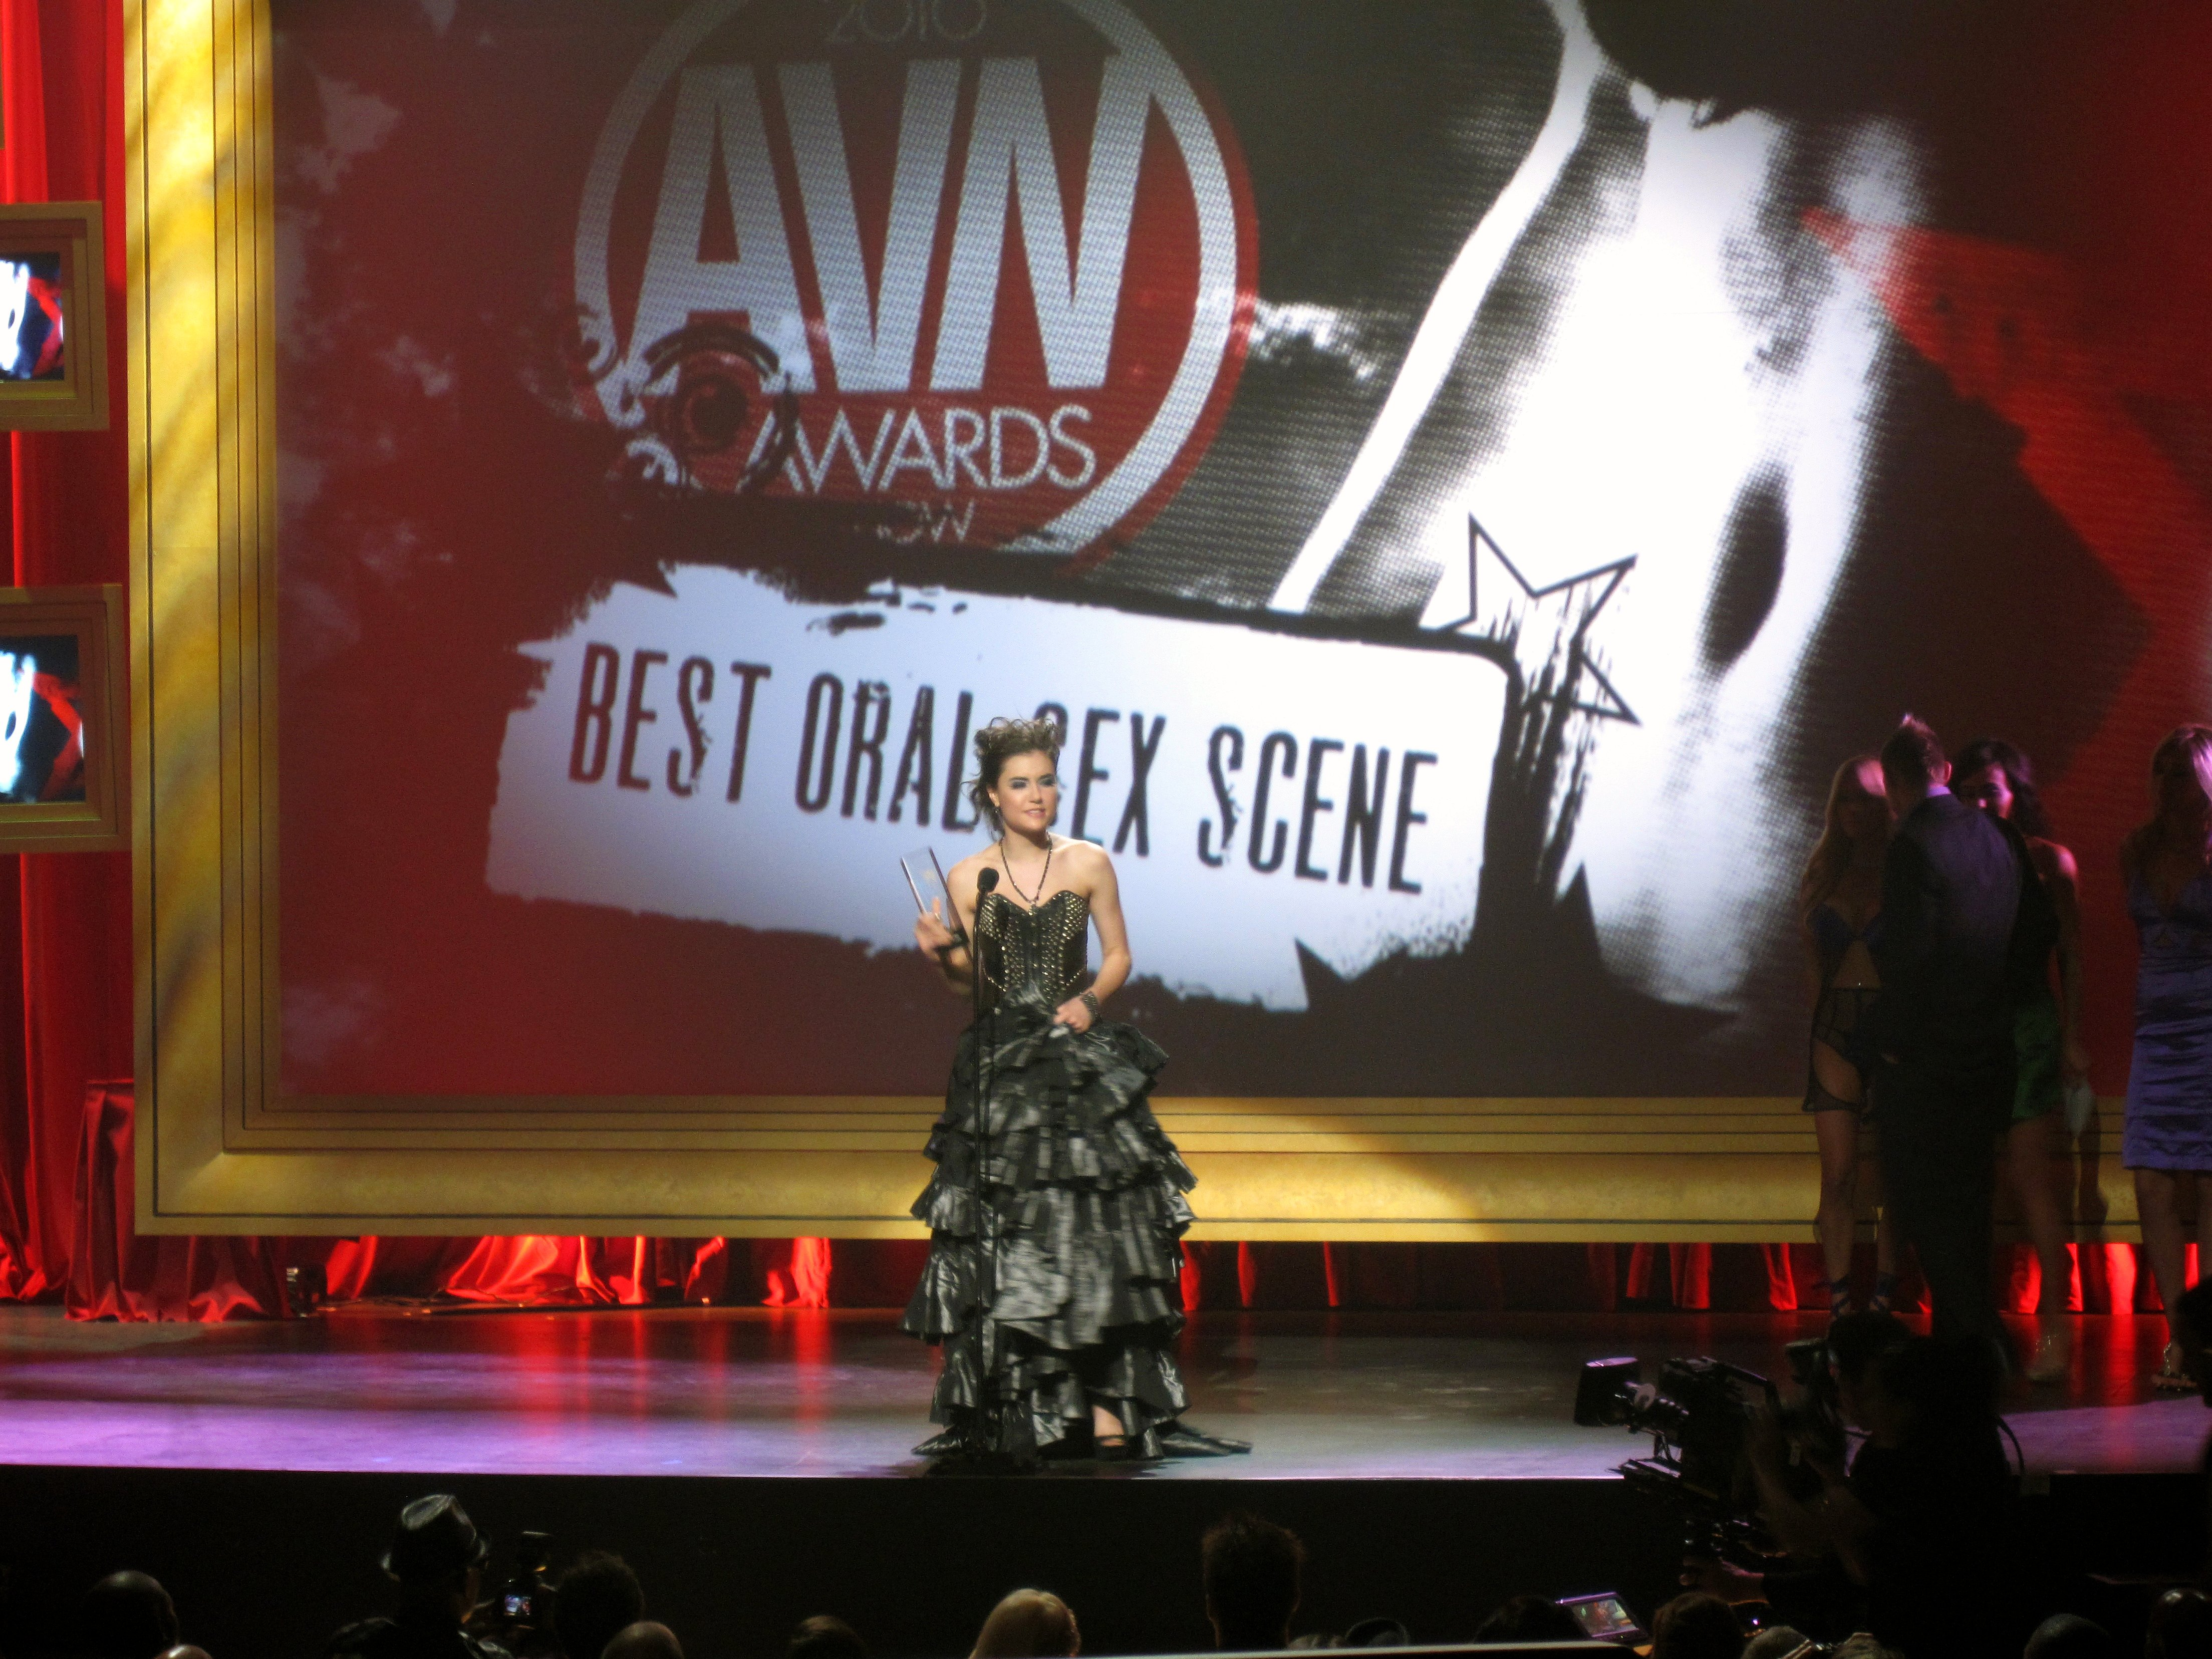 File:Sasha Grey Accepting the AVN Award For Best Oral Sex Scene.jpg